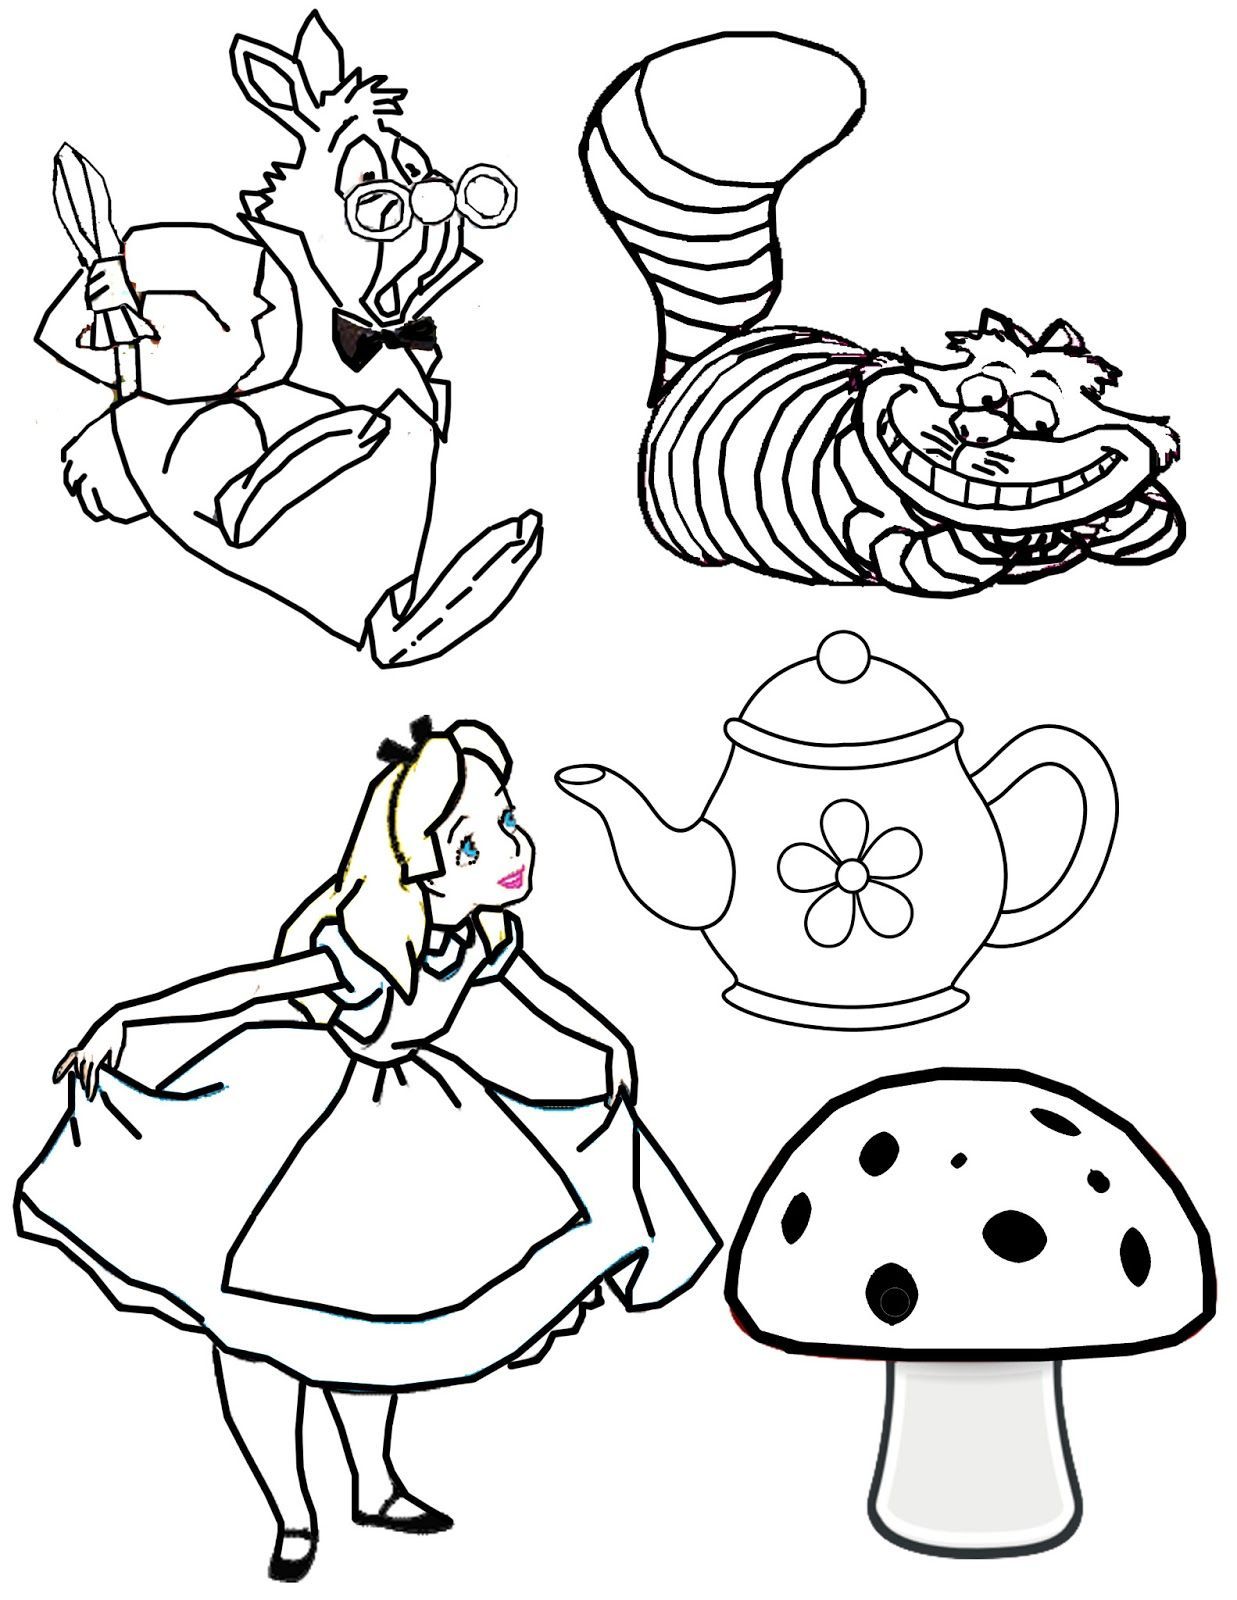 Mad hatter disney drawing